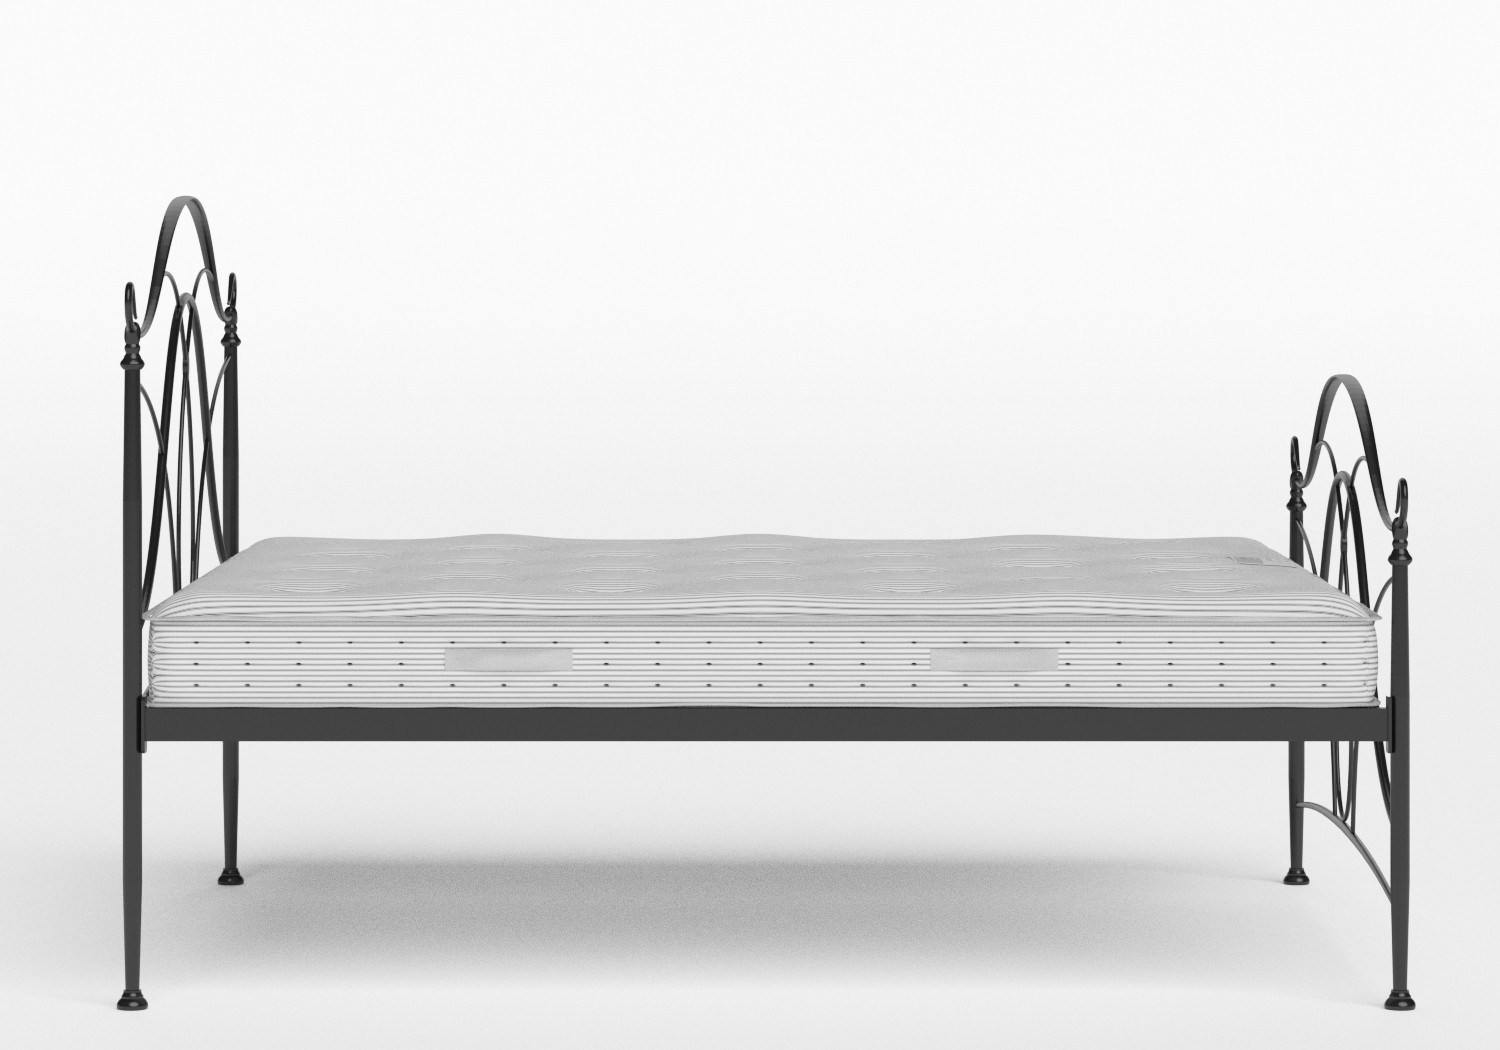 Ardo Iron/Metal Bed in Satin Black shown with Juno 1 mattress